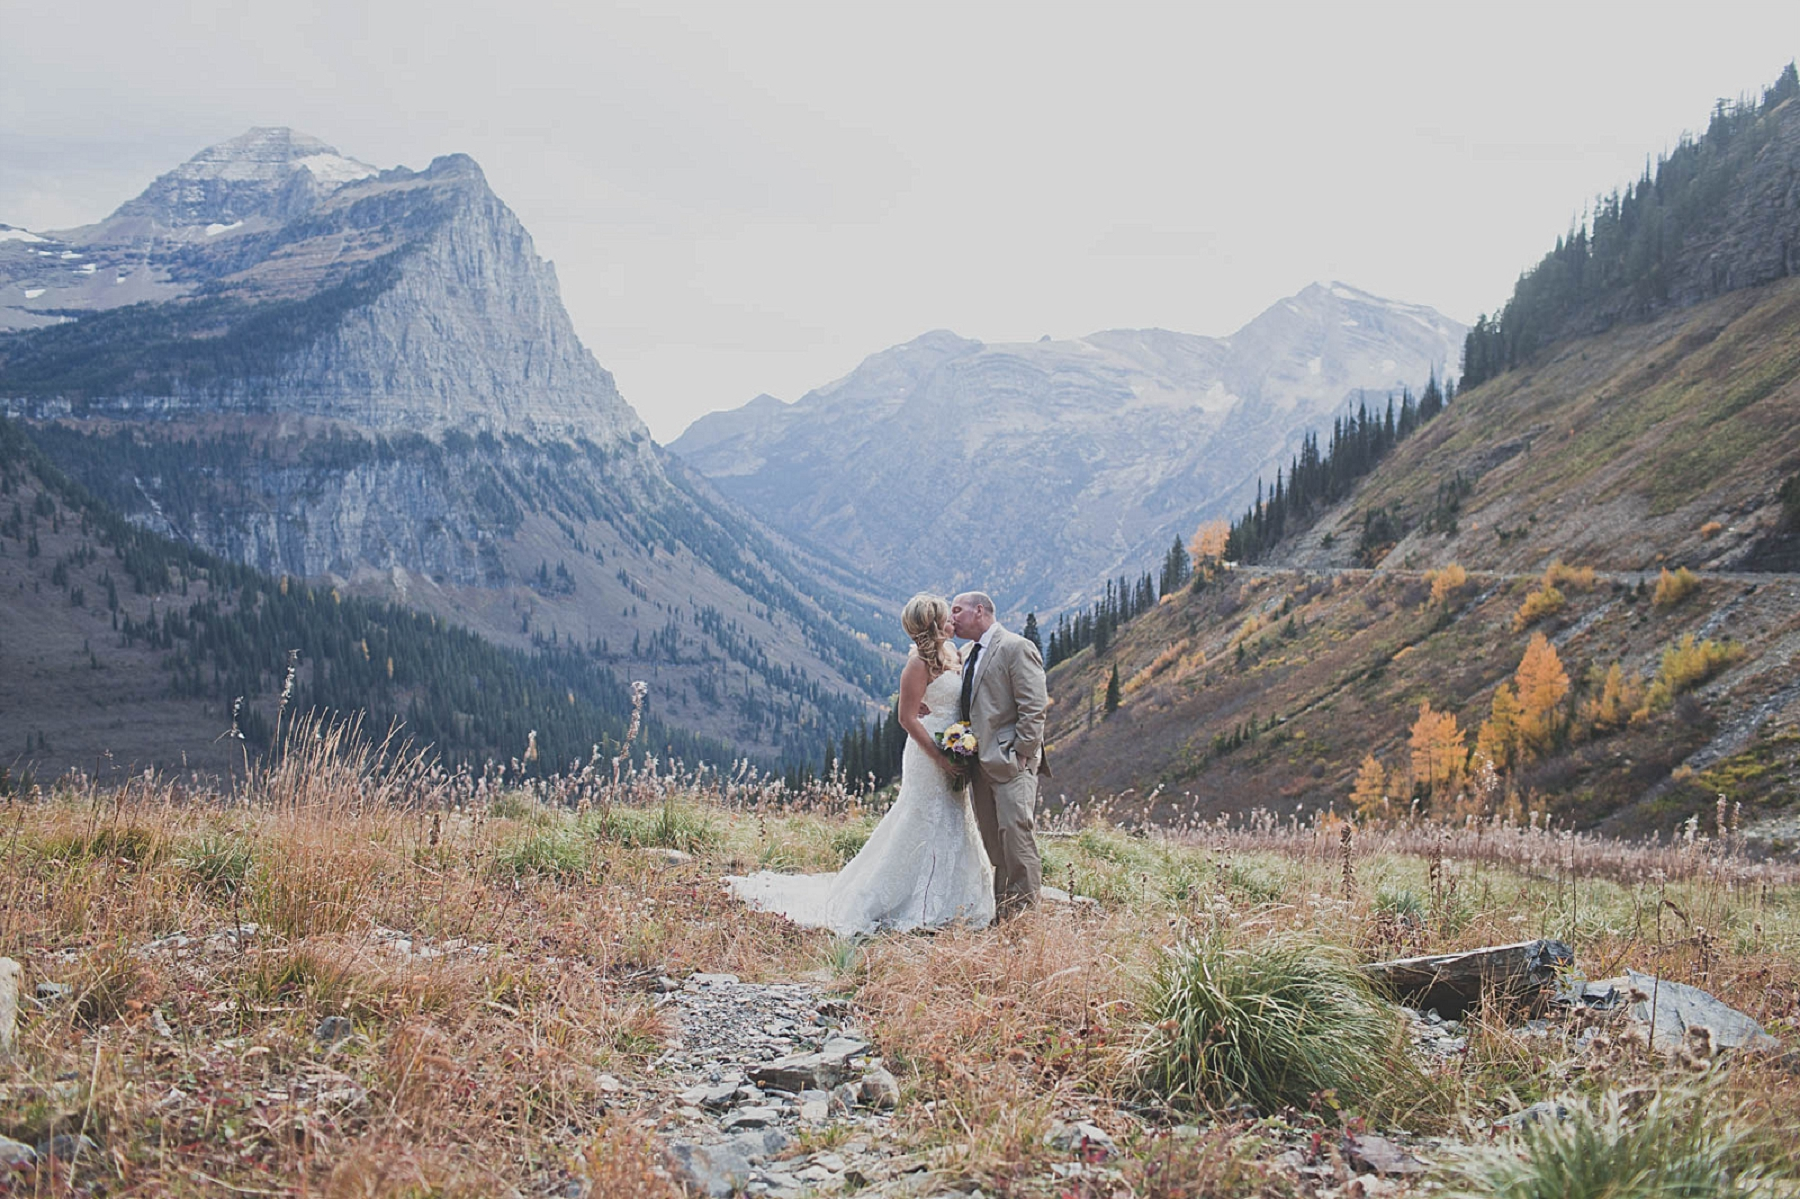 Jennifer_Mooney_photo_day_after_session_glacier_park_elegant_wedding_bride_groom_destination_-33.jpg